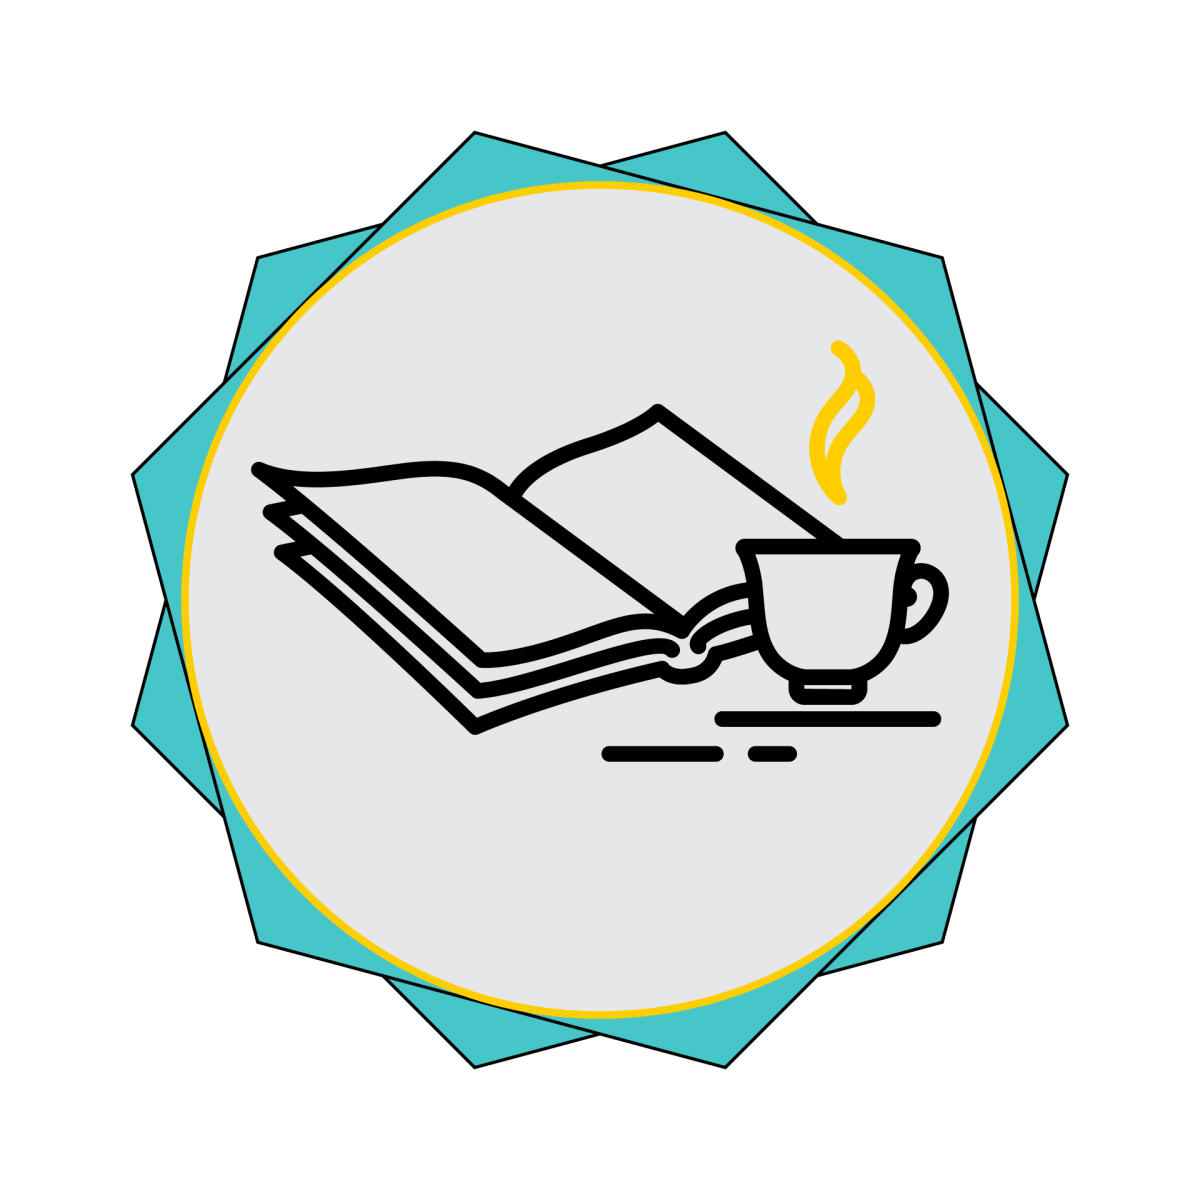 BookClub badge an open book with a cup of tea